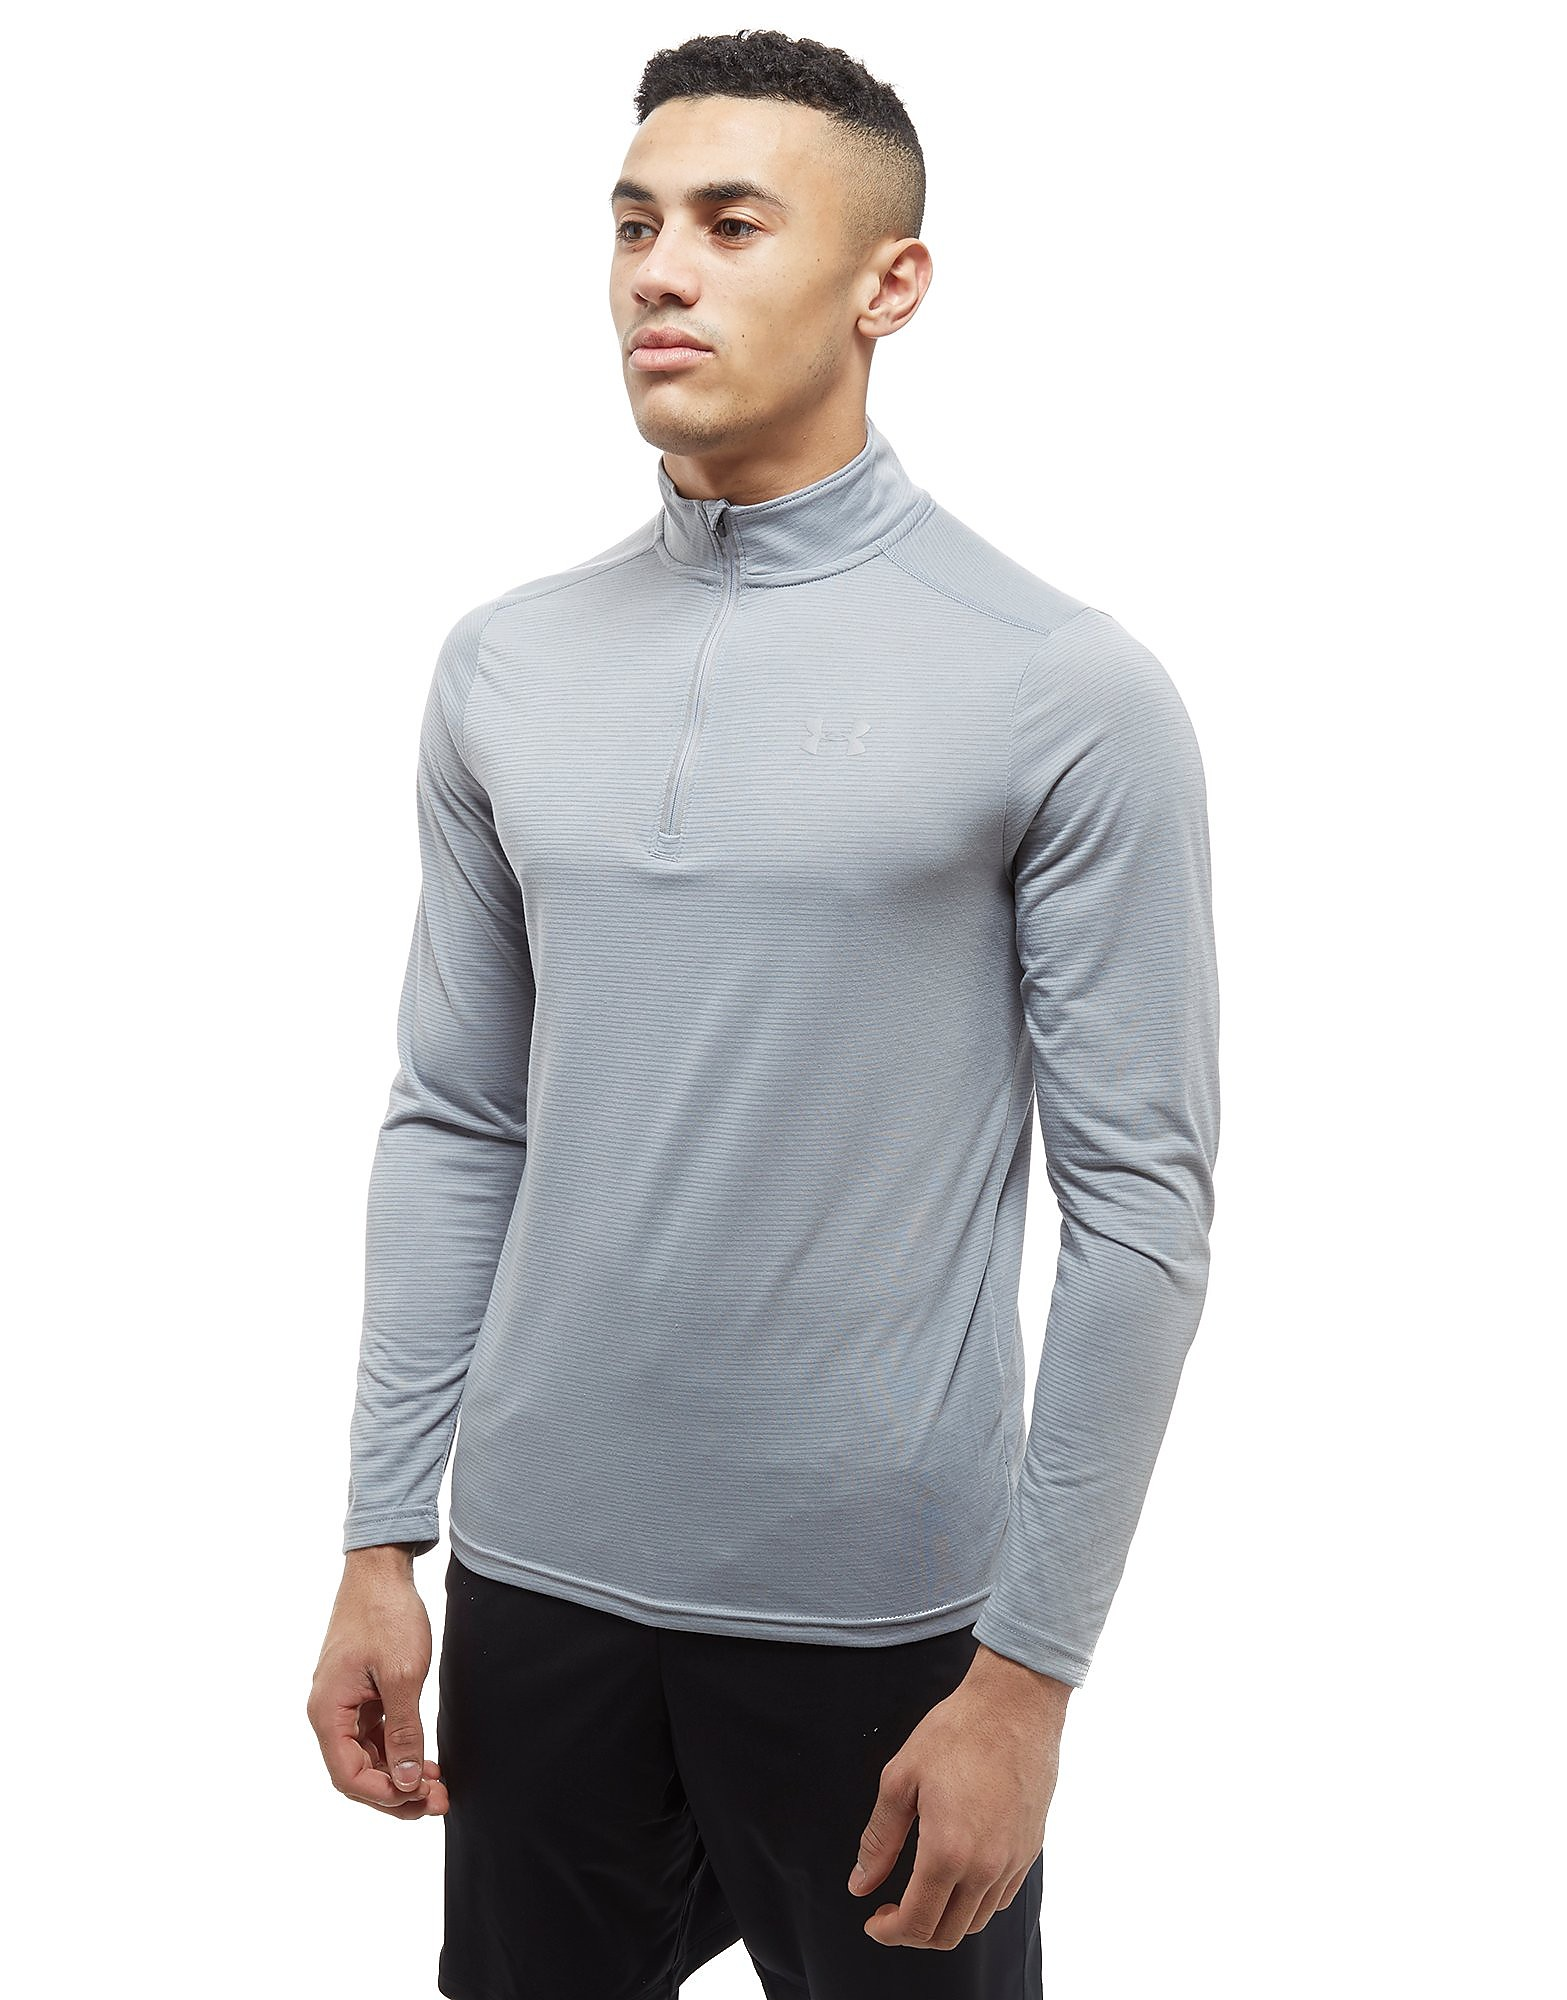 Under Armour Threadborne Streaker Run 1/4 Zip Top